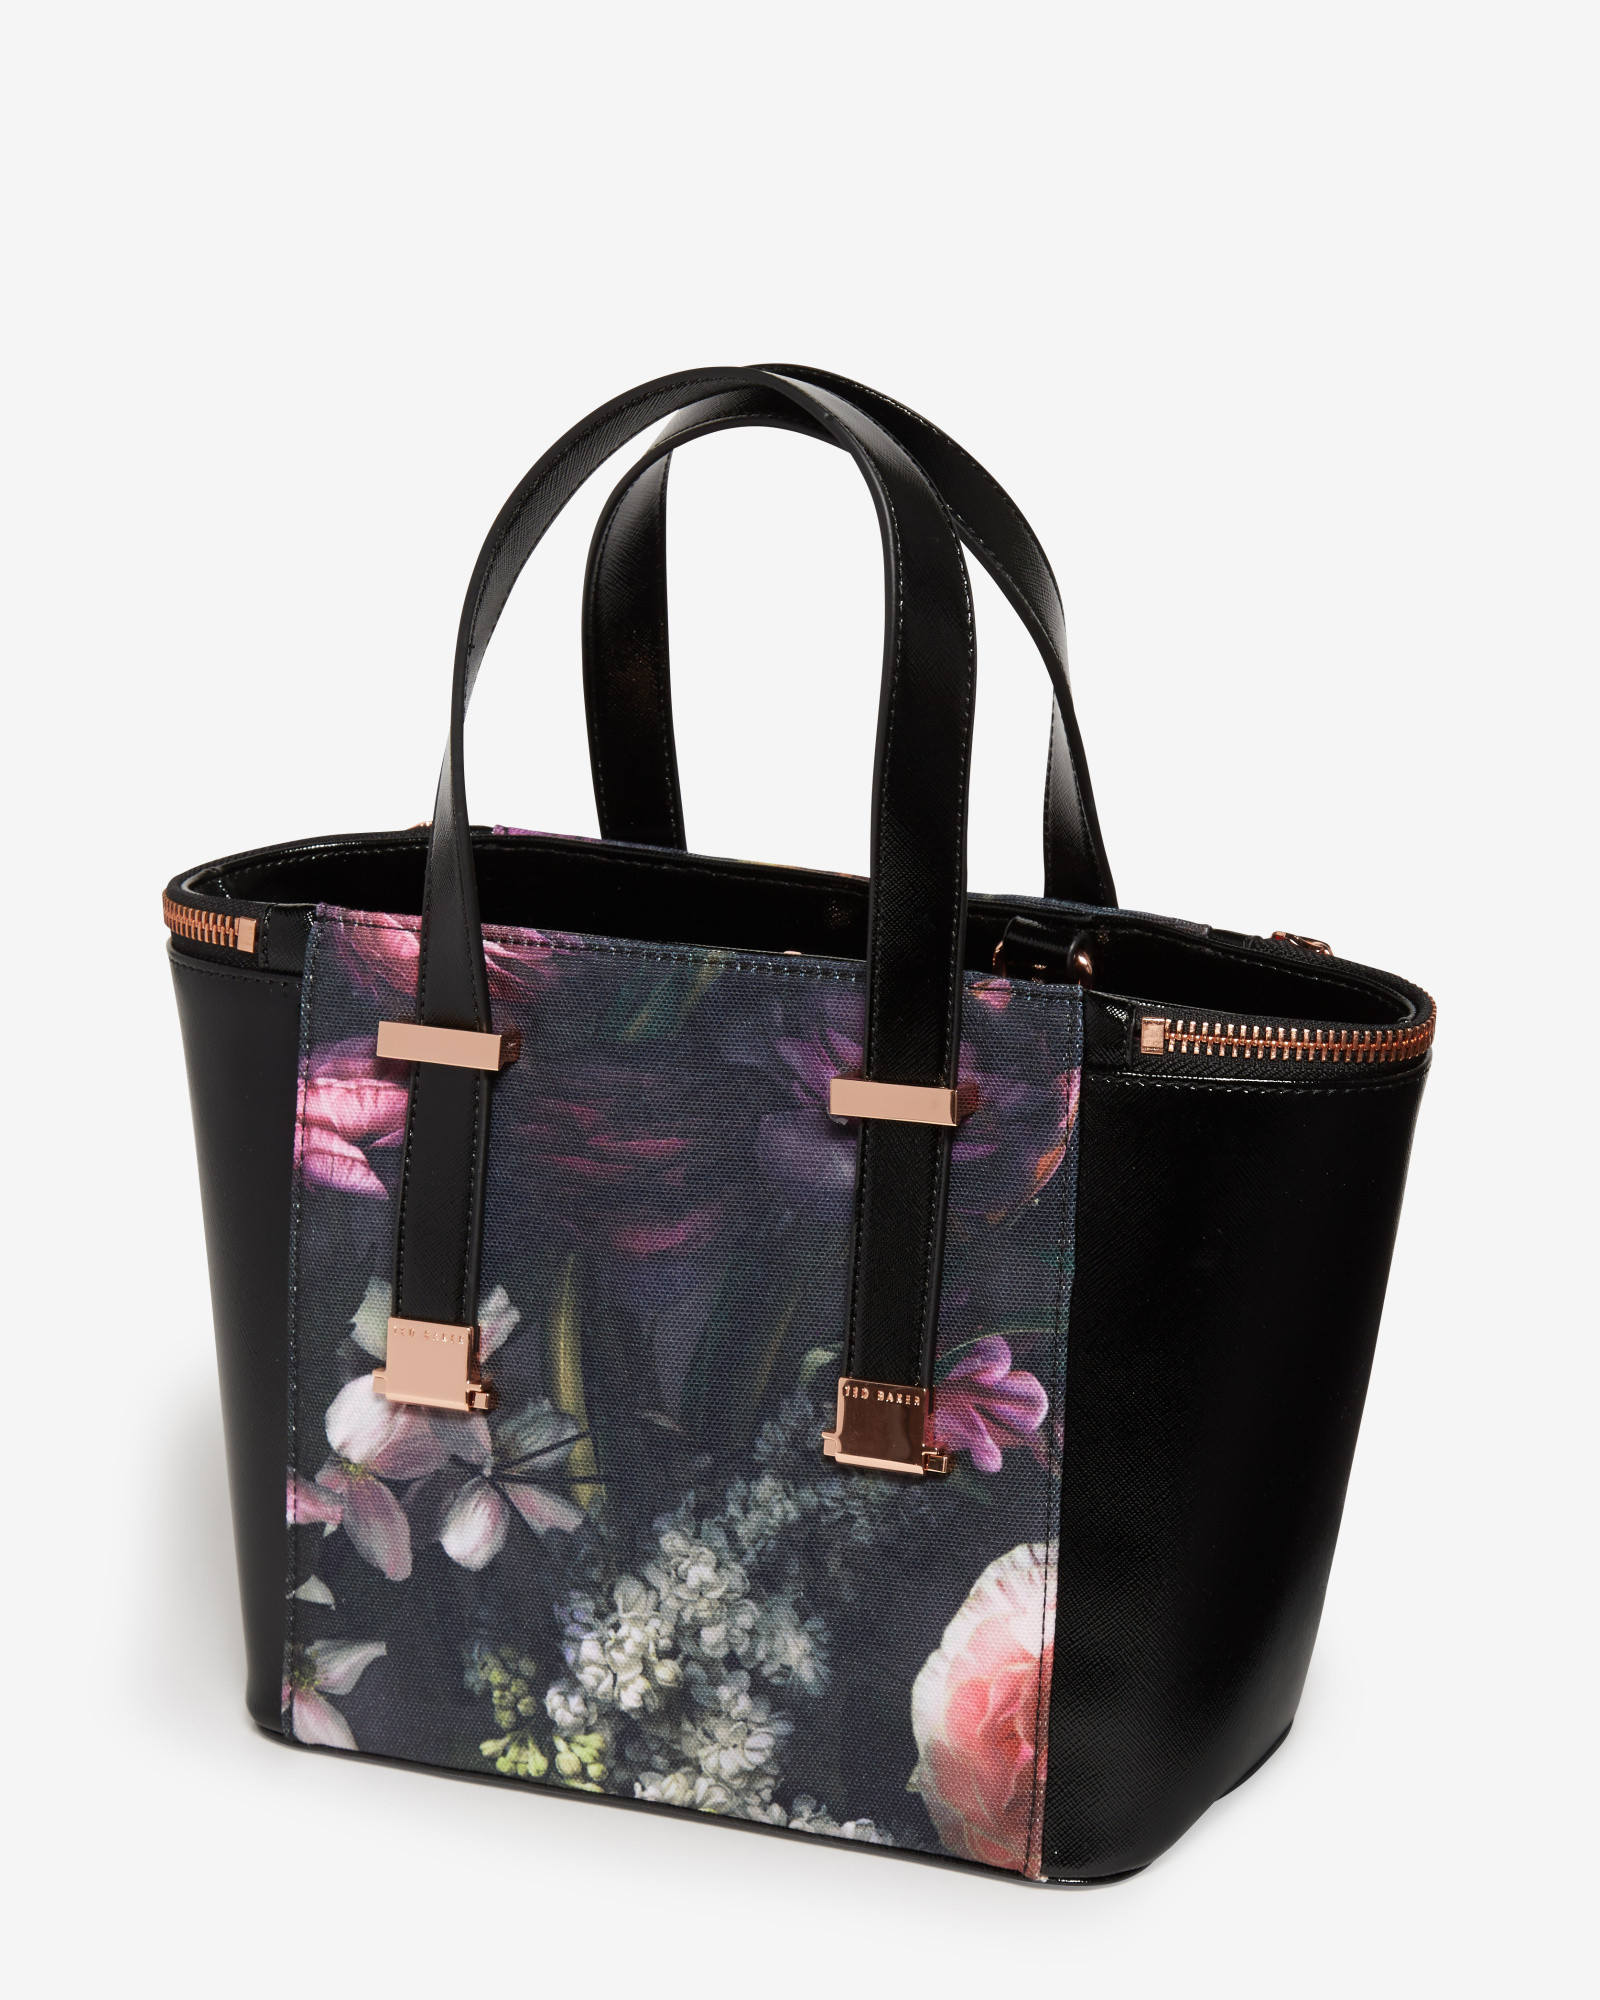 8cf9653a575 Ted Baker Cicilia Floral-Print Tote in Black - Lyst